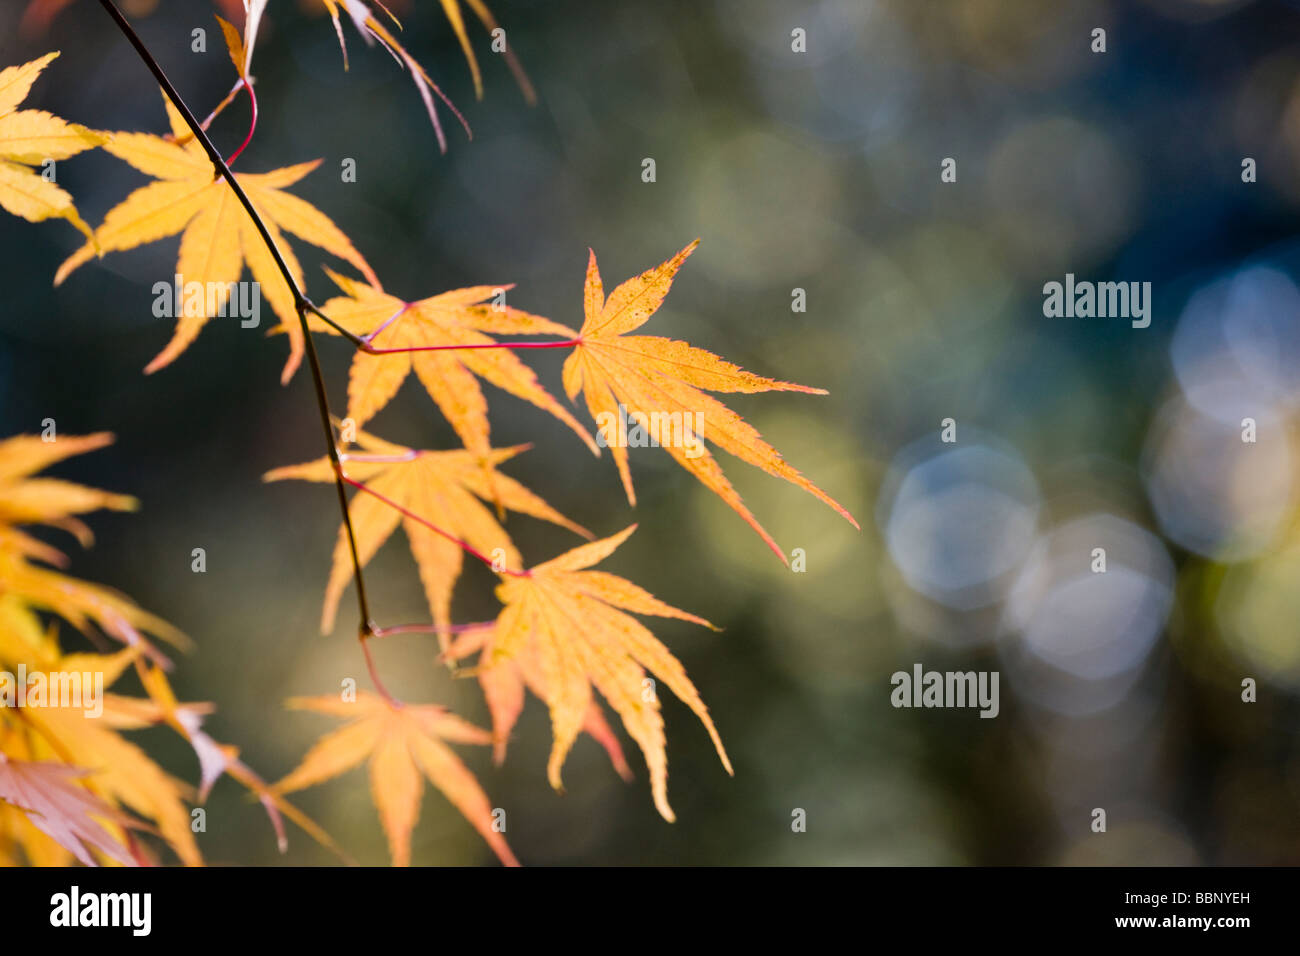 Acer Palmatum Nishiki Gawa Autumn Foliage Stock Photo 24454153